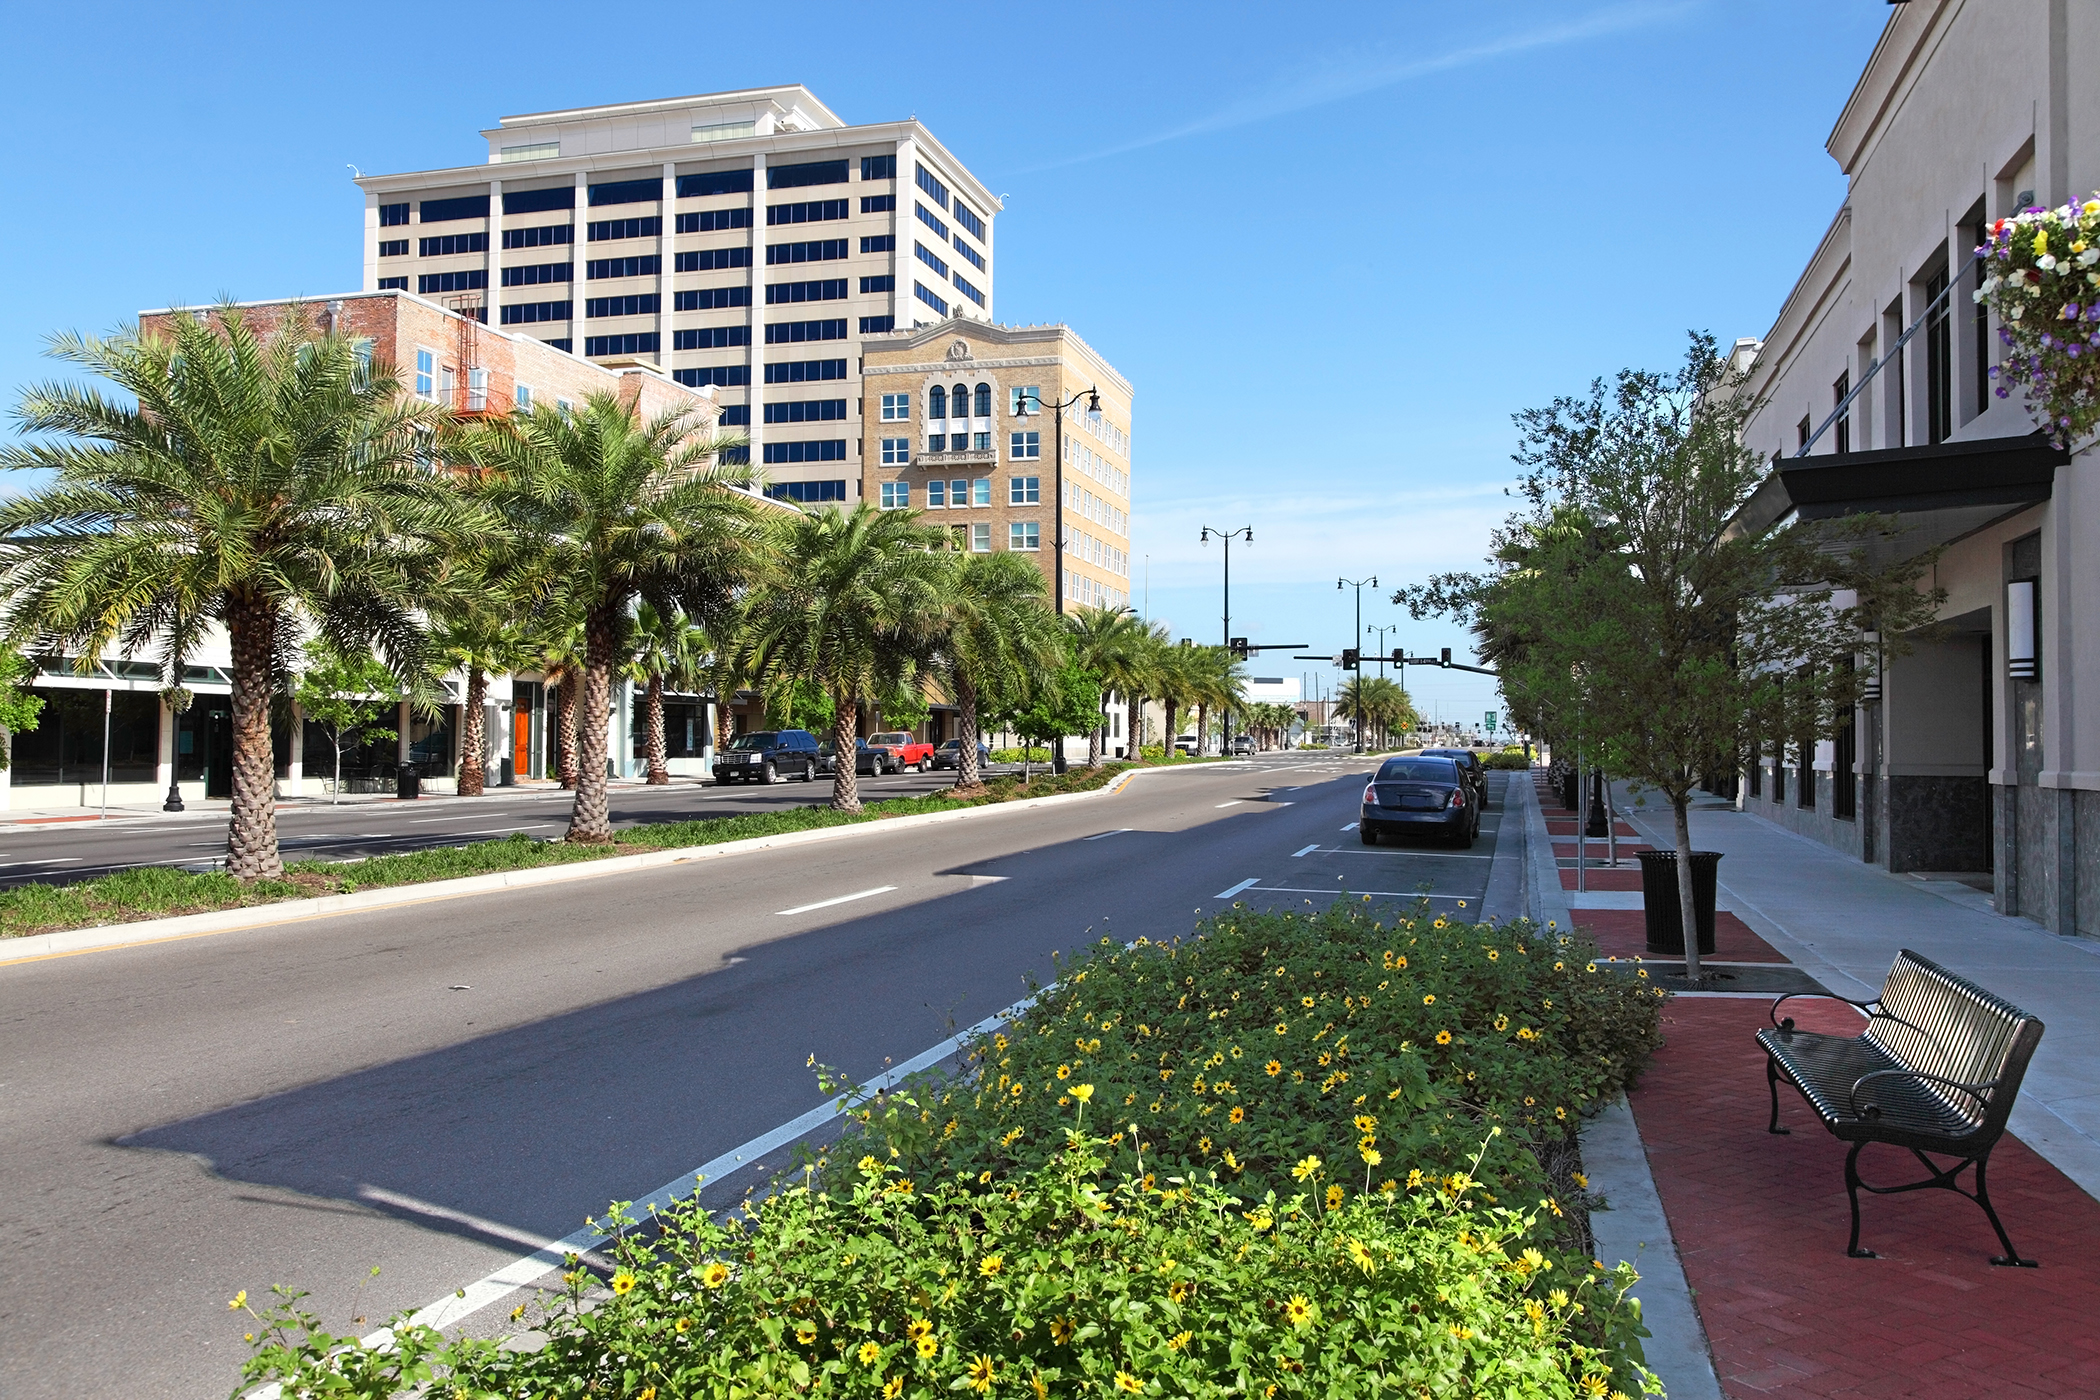 Gulfport, Mississippi. Among its attractions are a 250-acre Gulfport Sportsplex and Gulf Islands Water Park, the largest water park on the coast.